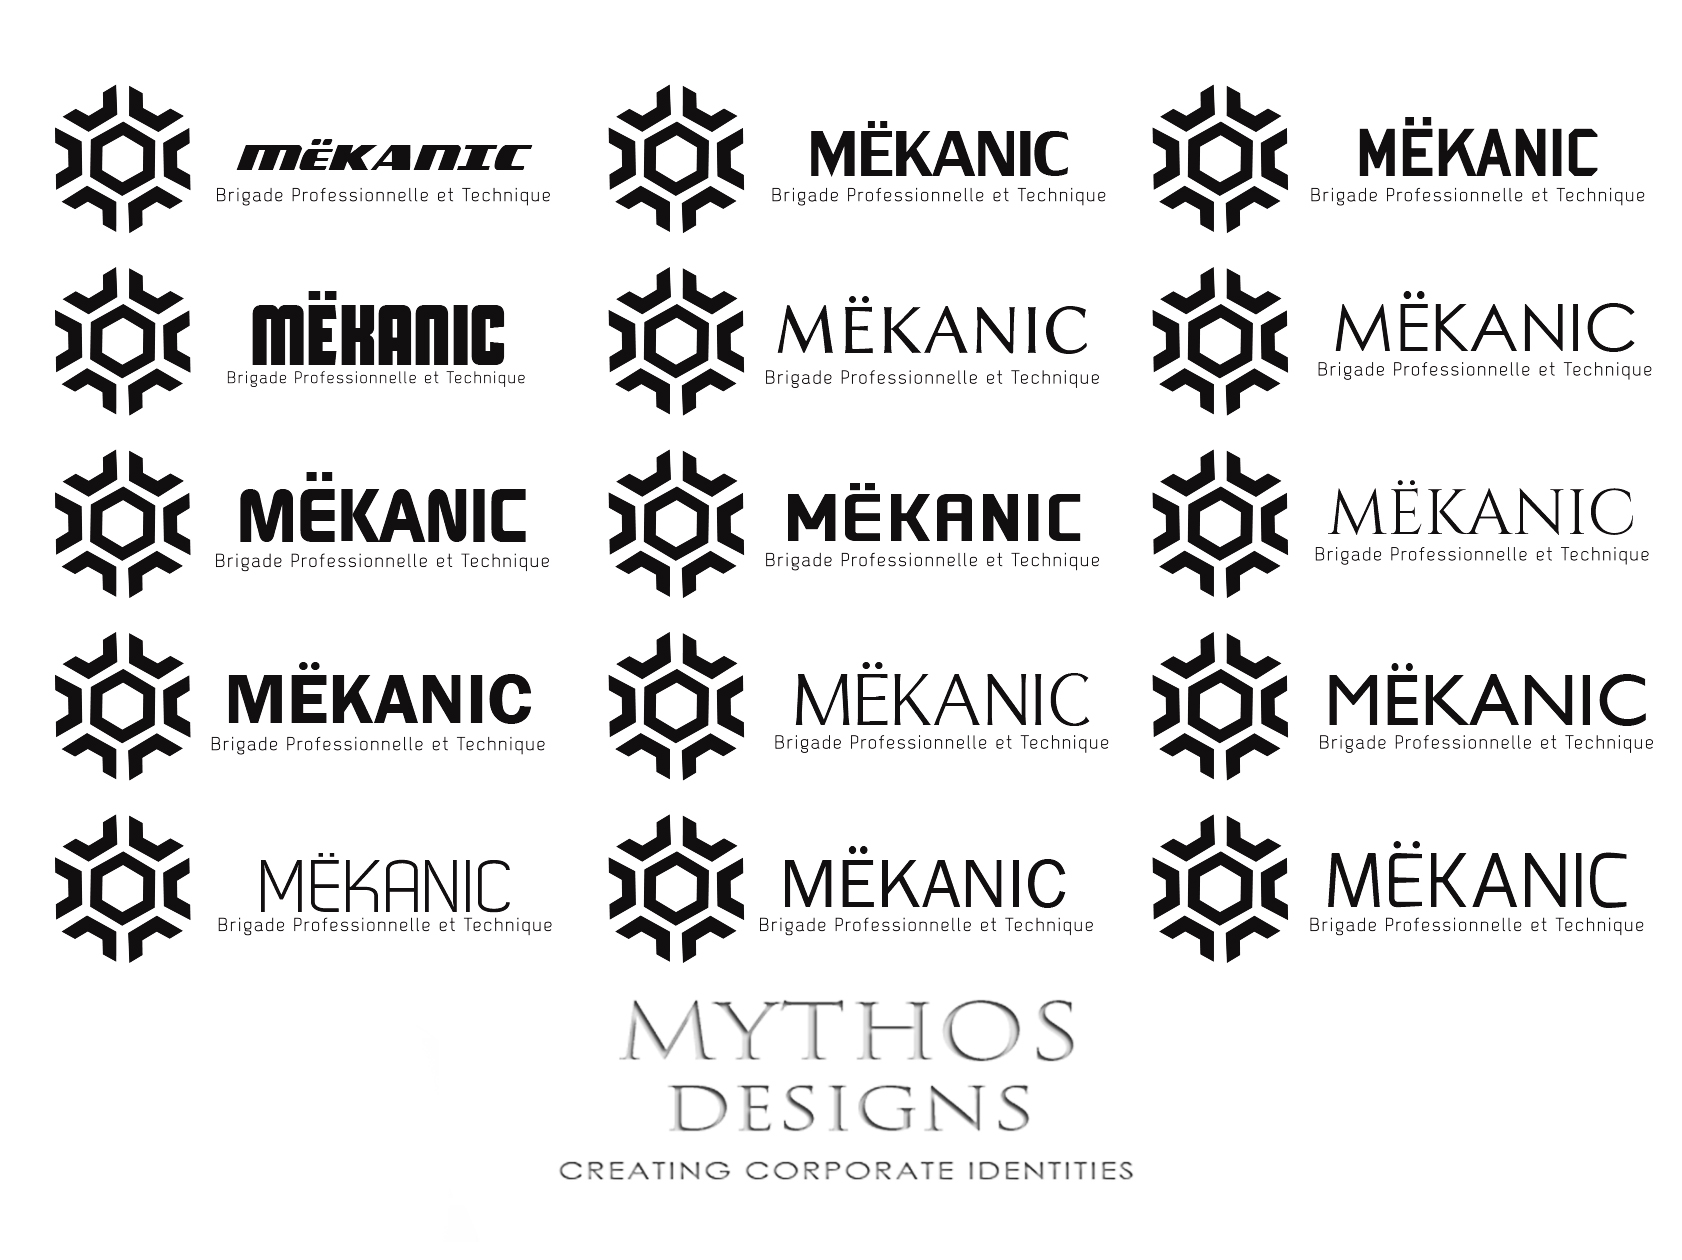 Logo Design by Mythos Designs - Entry No. 238 in the Logo Design Contest Creative Logo Design for MËKANIC - Professional and technical squad.